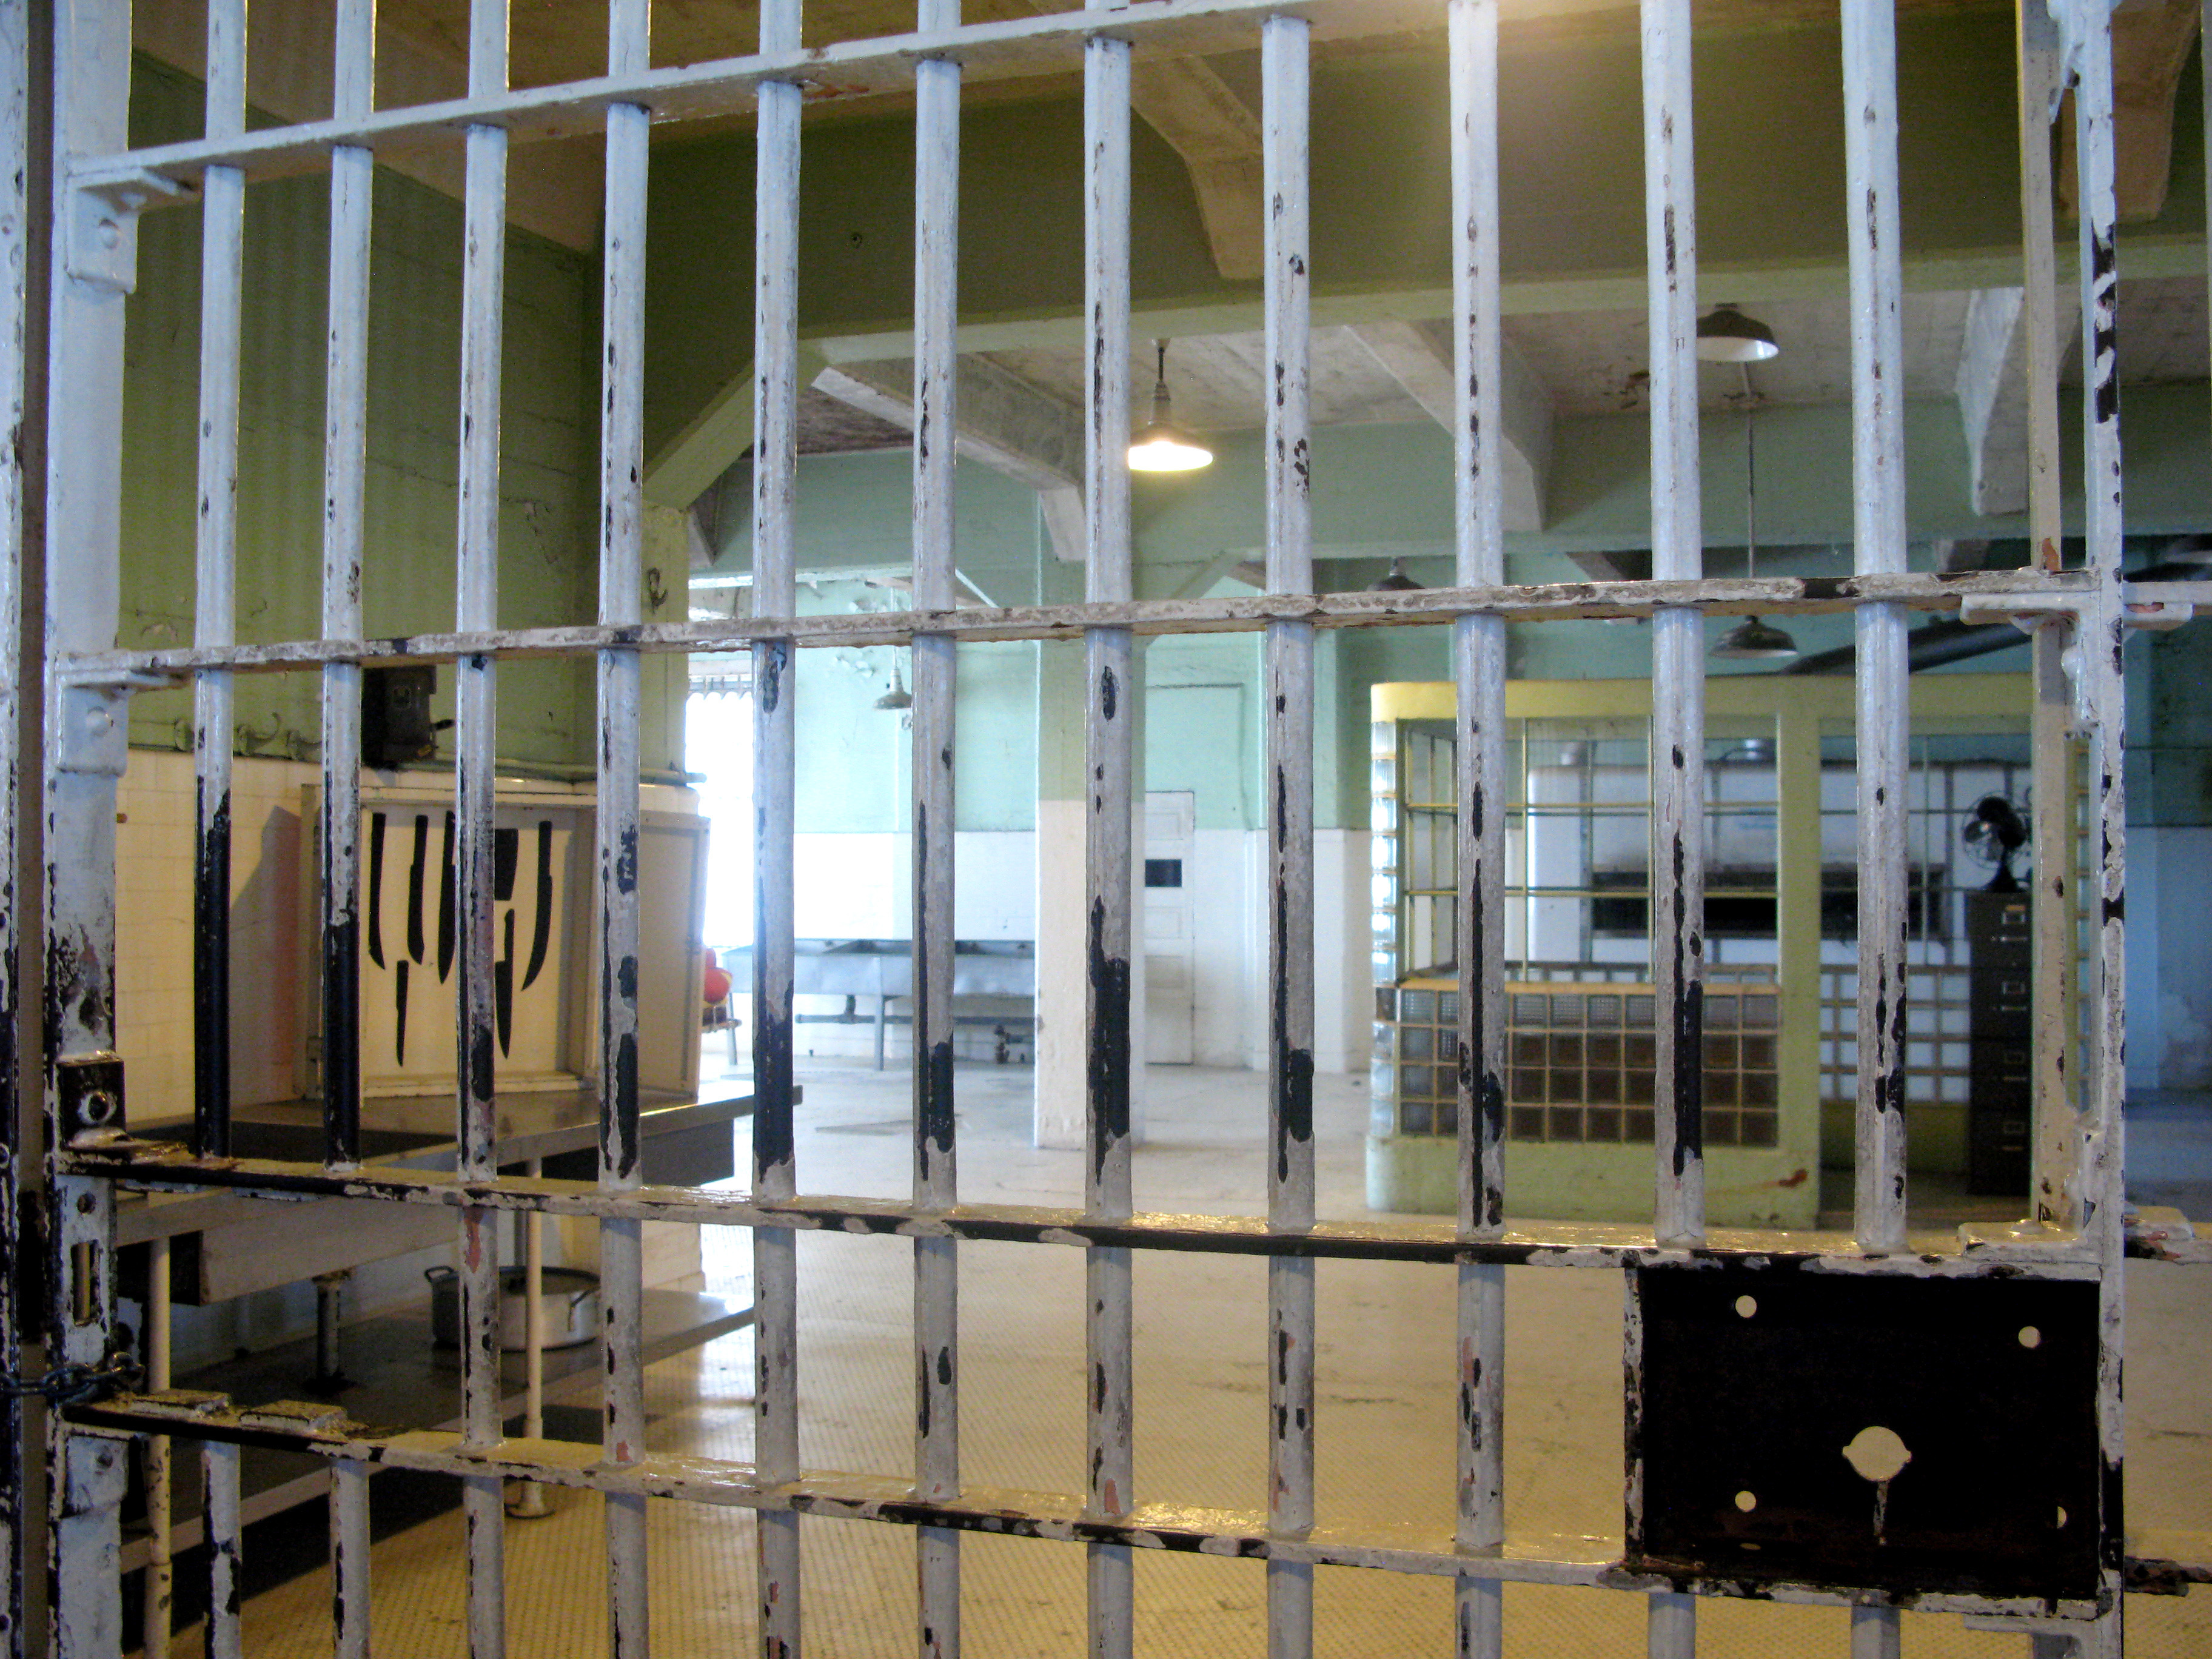 View from the mess hall to the kitchen at infamous Alcatraz prison. Credit: PA